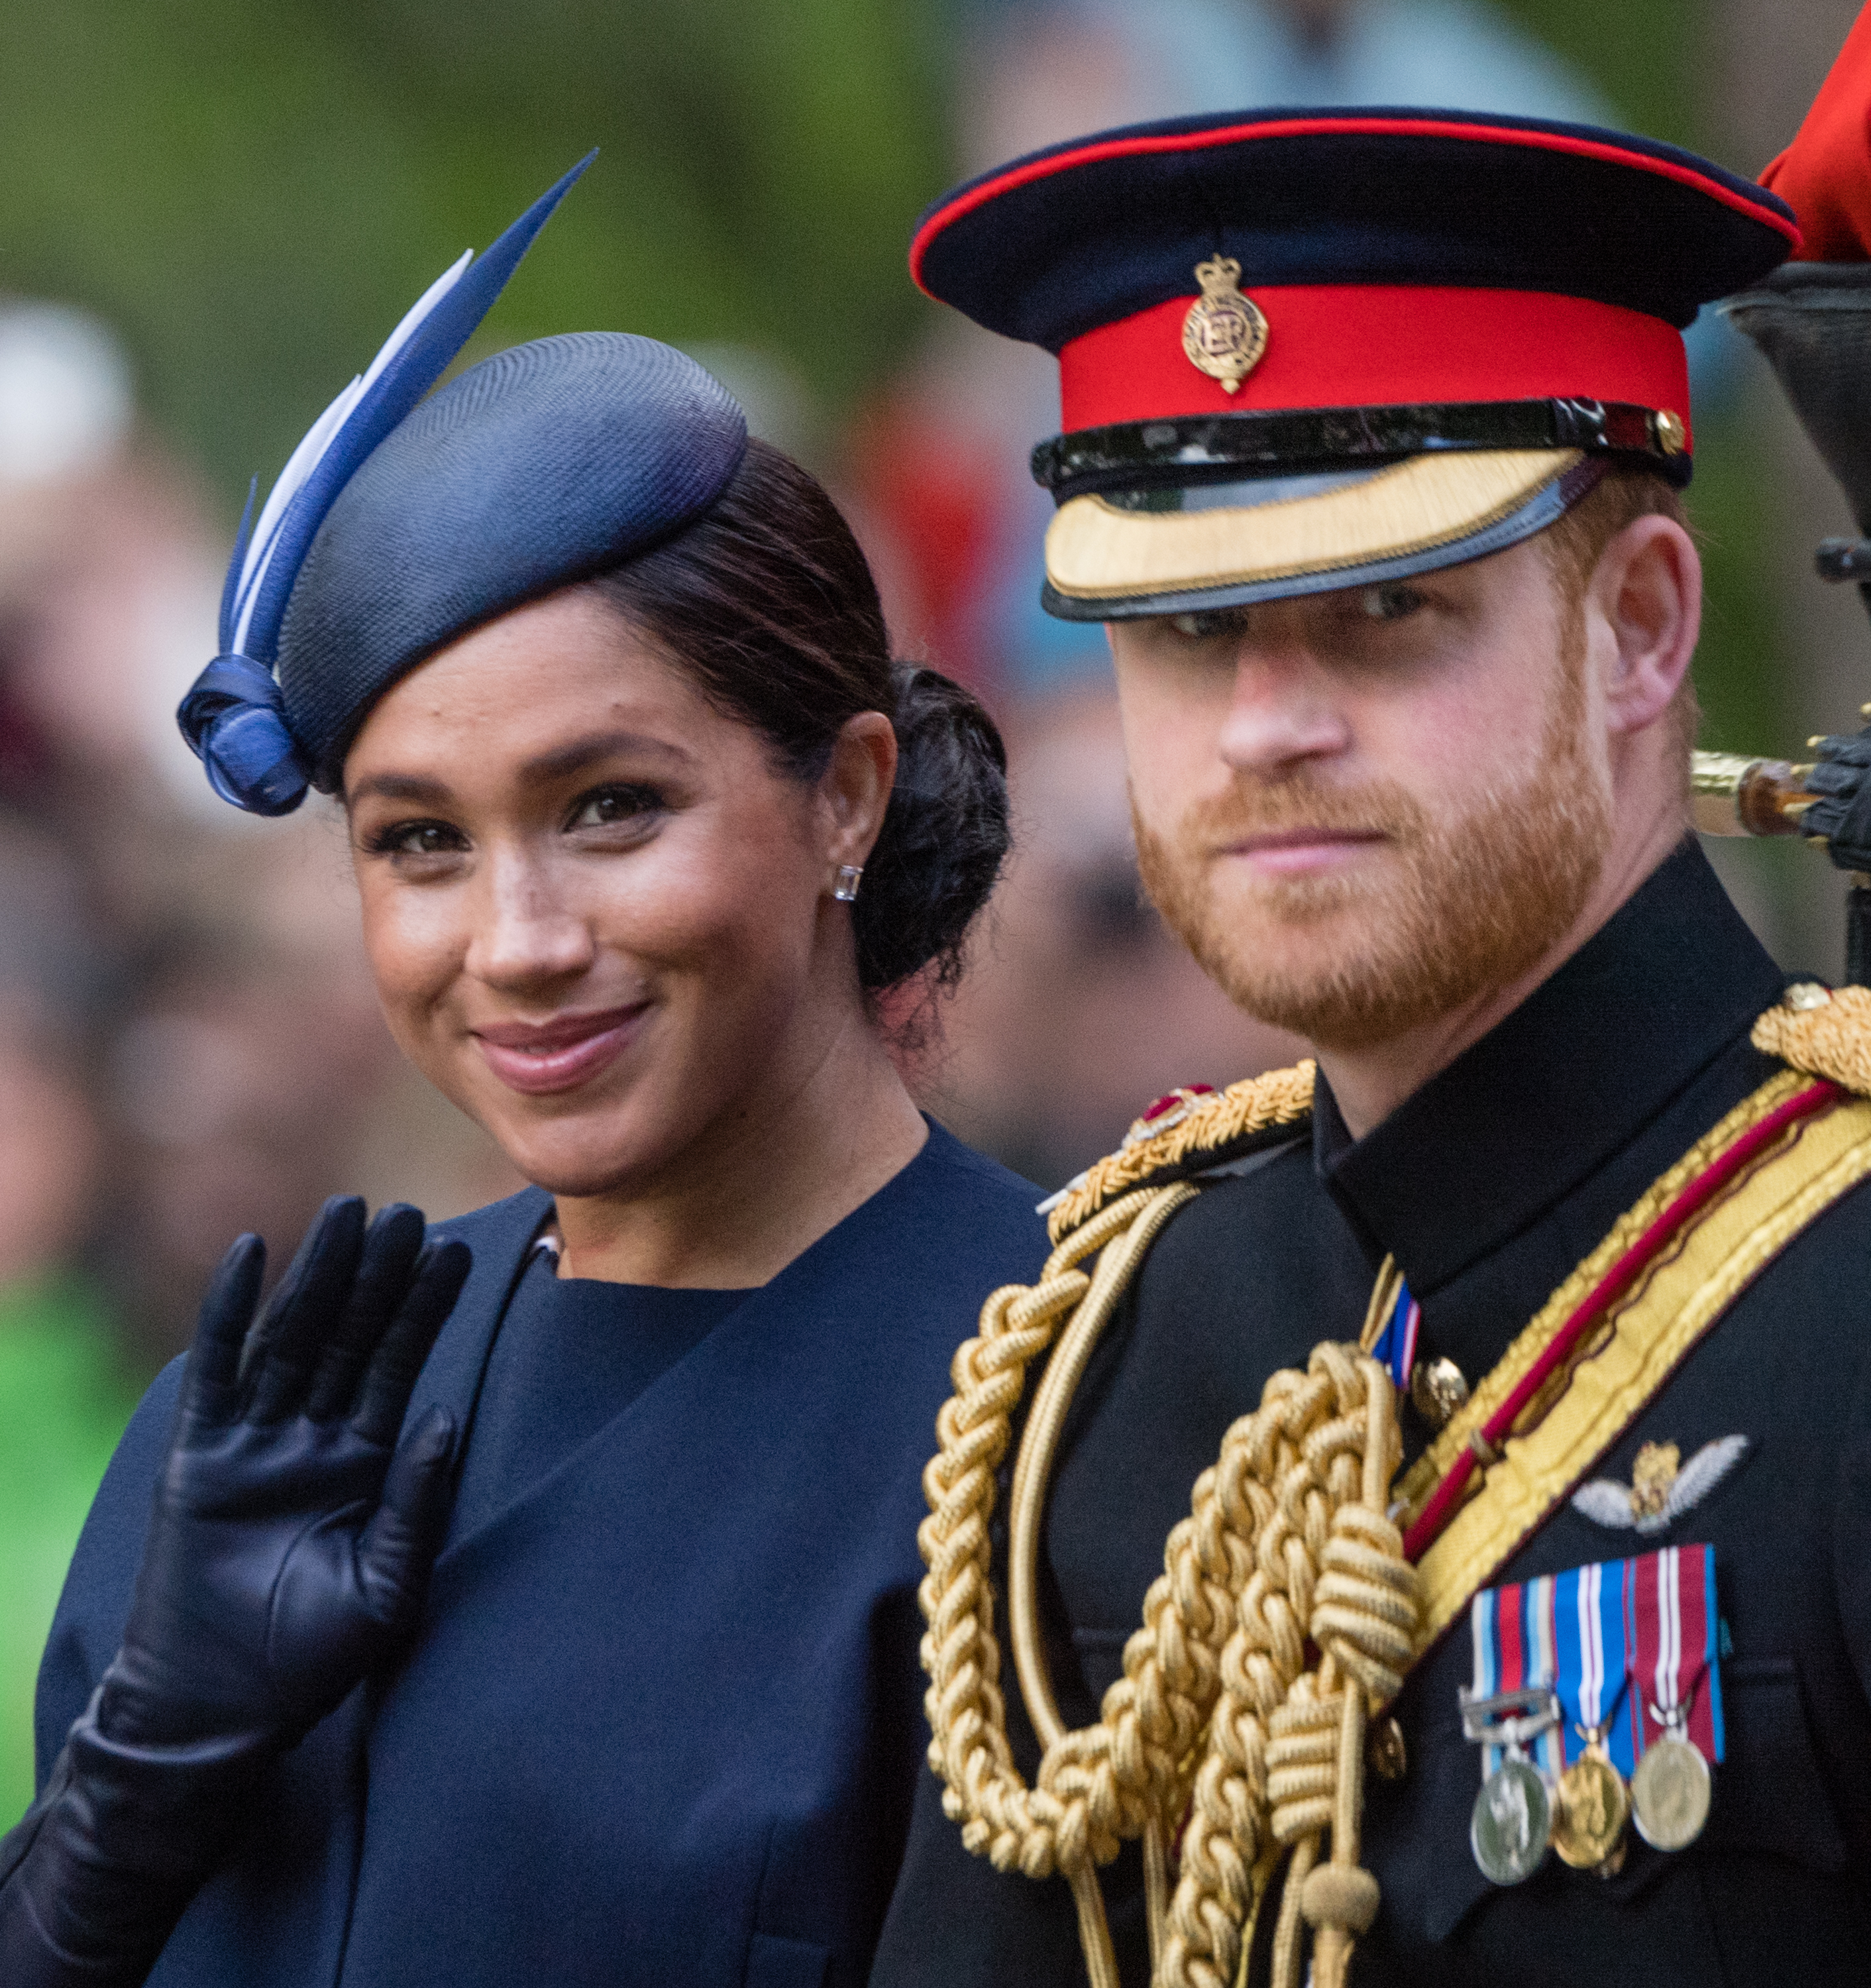 LONDON, ENGLAND - JUNE 08: Prince Harry, Duke of Sussex and Meghan, Duchess of Sussex ride by carriage down the Mall during Trooping The Colour, the Queen's annual birthday parade, on June 08, 2019 in London, England. (Photo by Samir Hussein/Samir Hussein/WireImage)